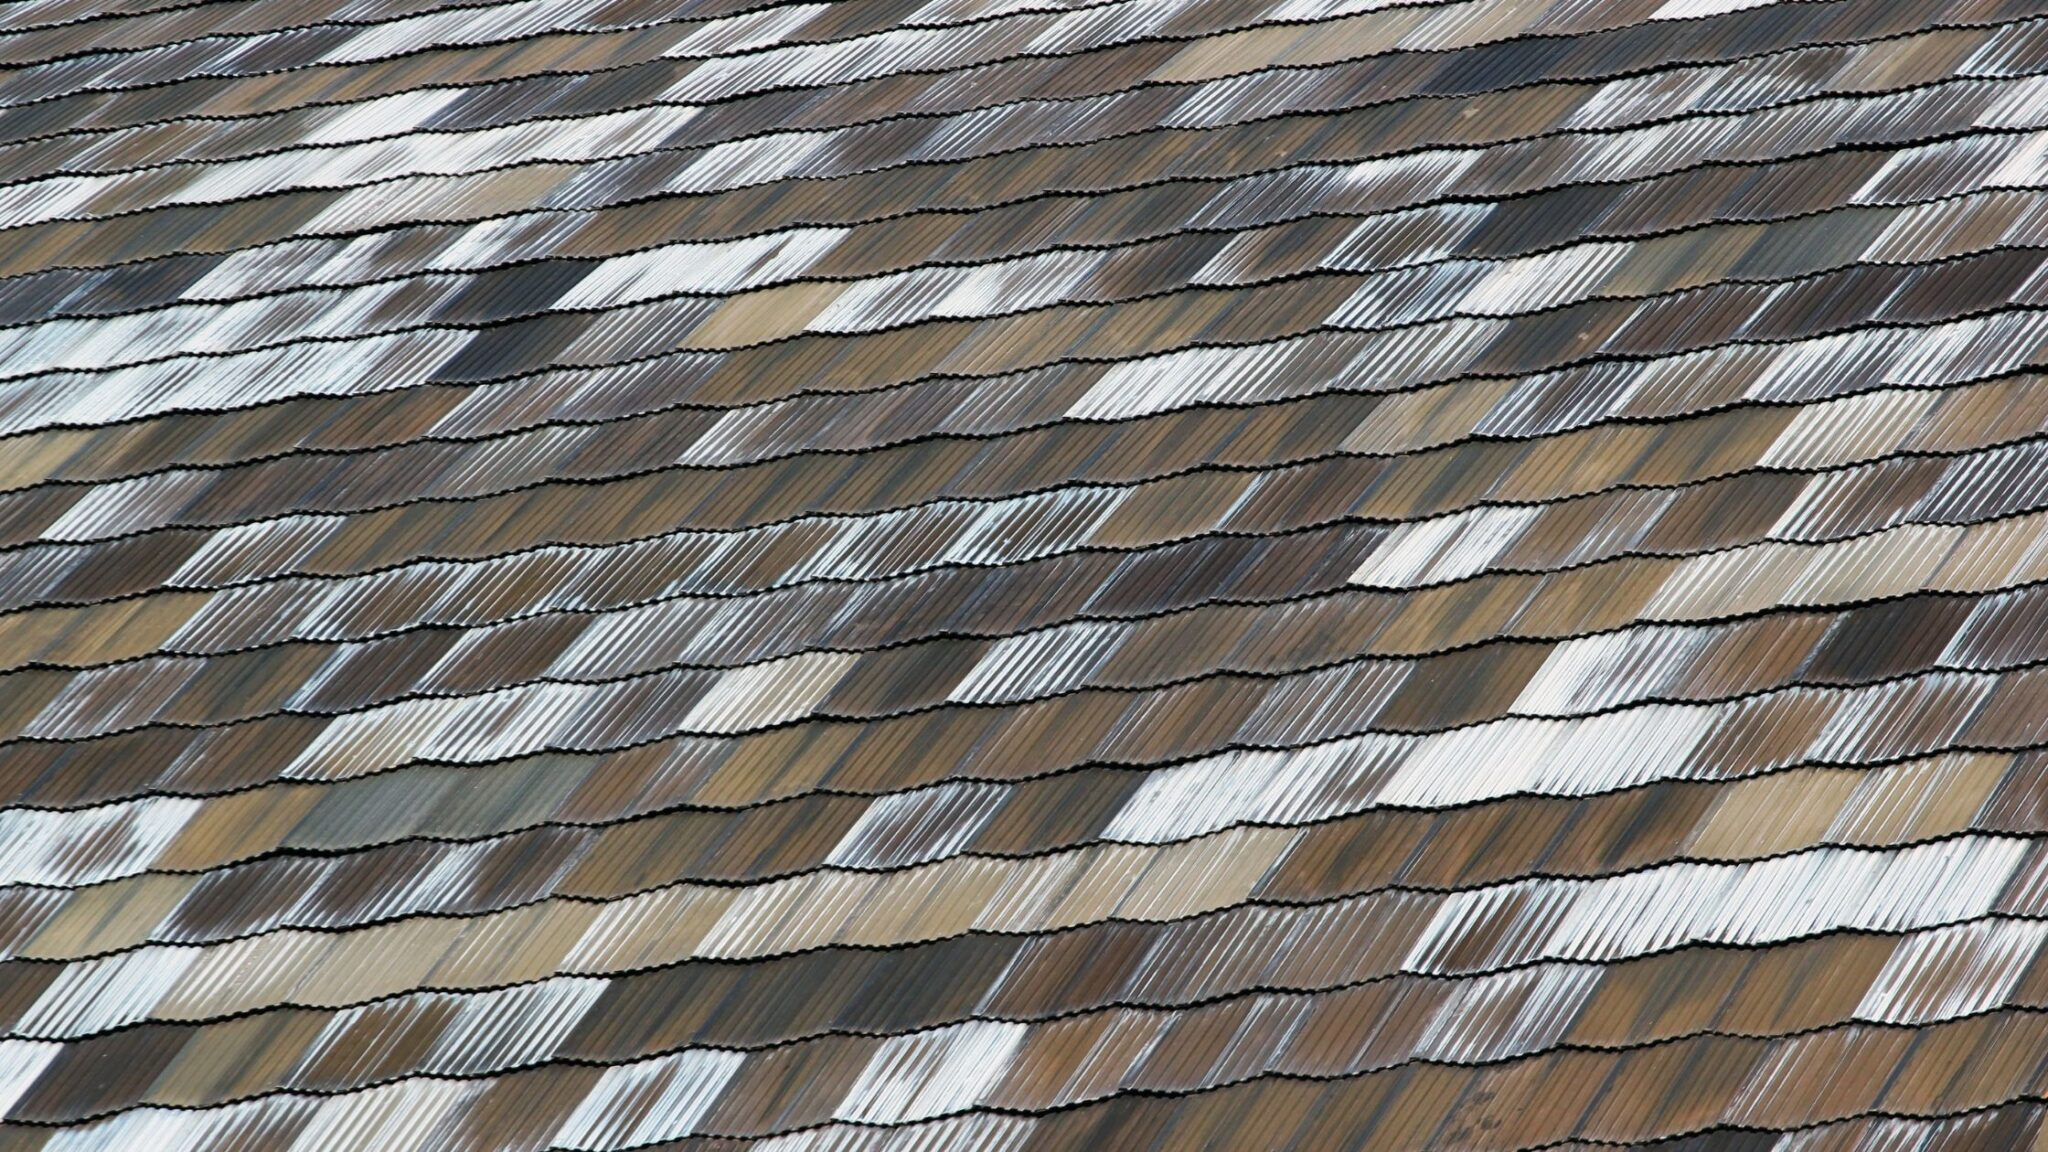 Getting New Roofing Soon? Compare Metal & Asphalt Shingles